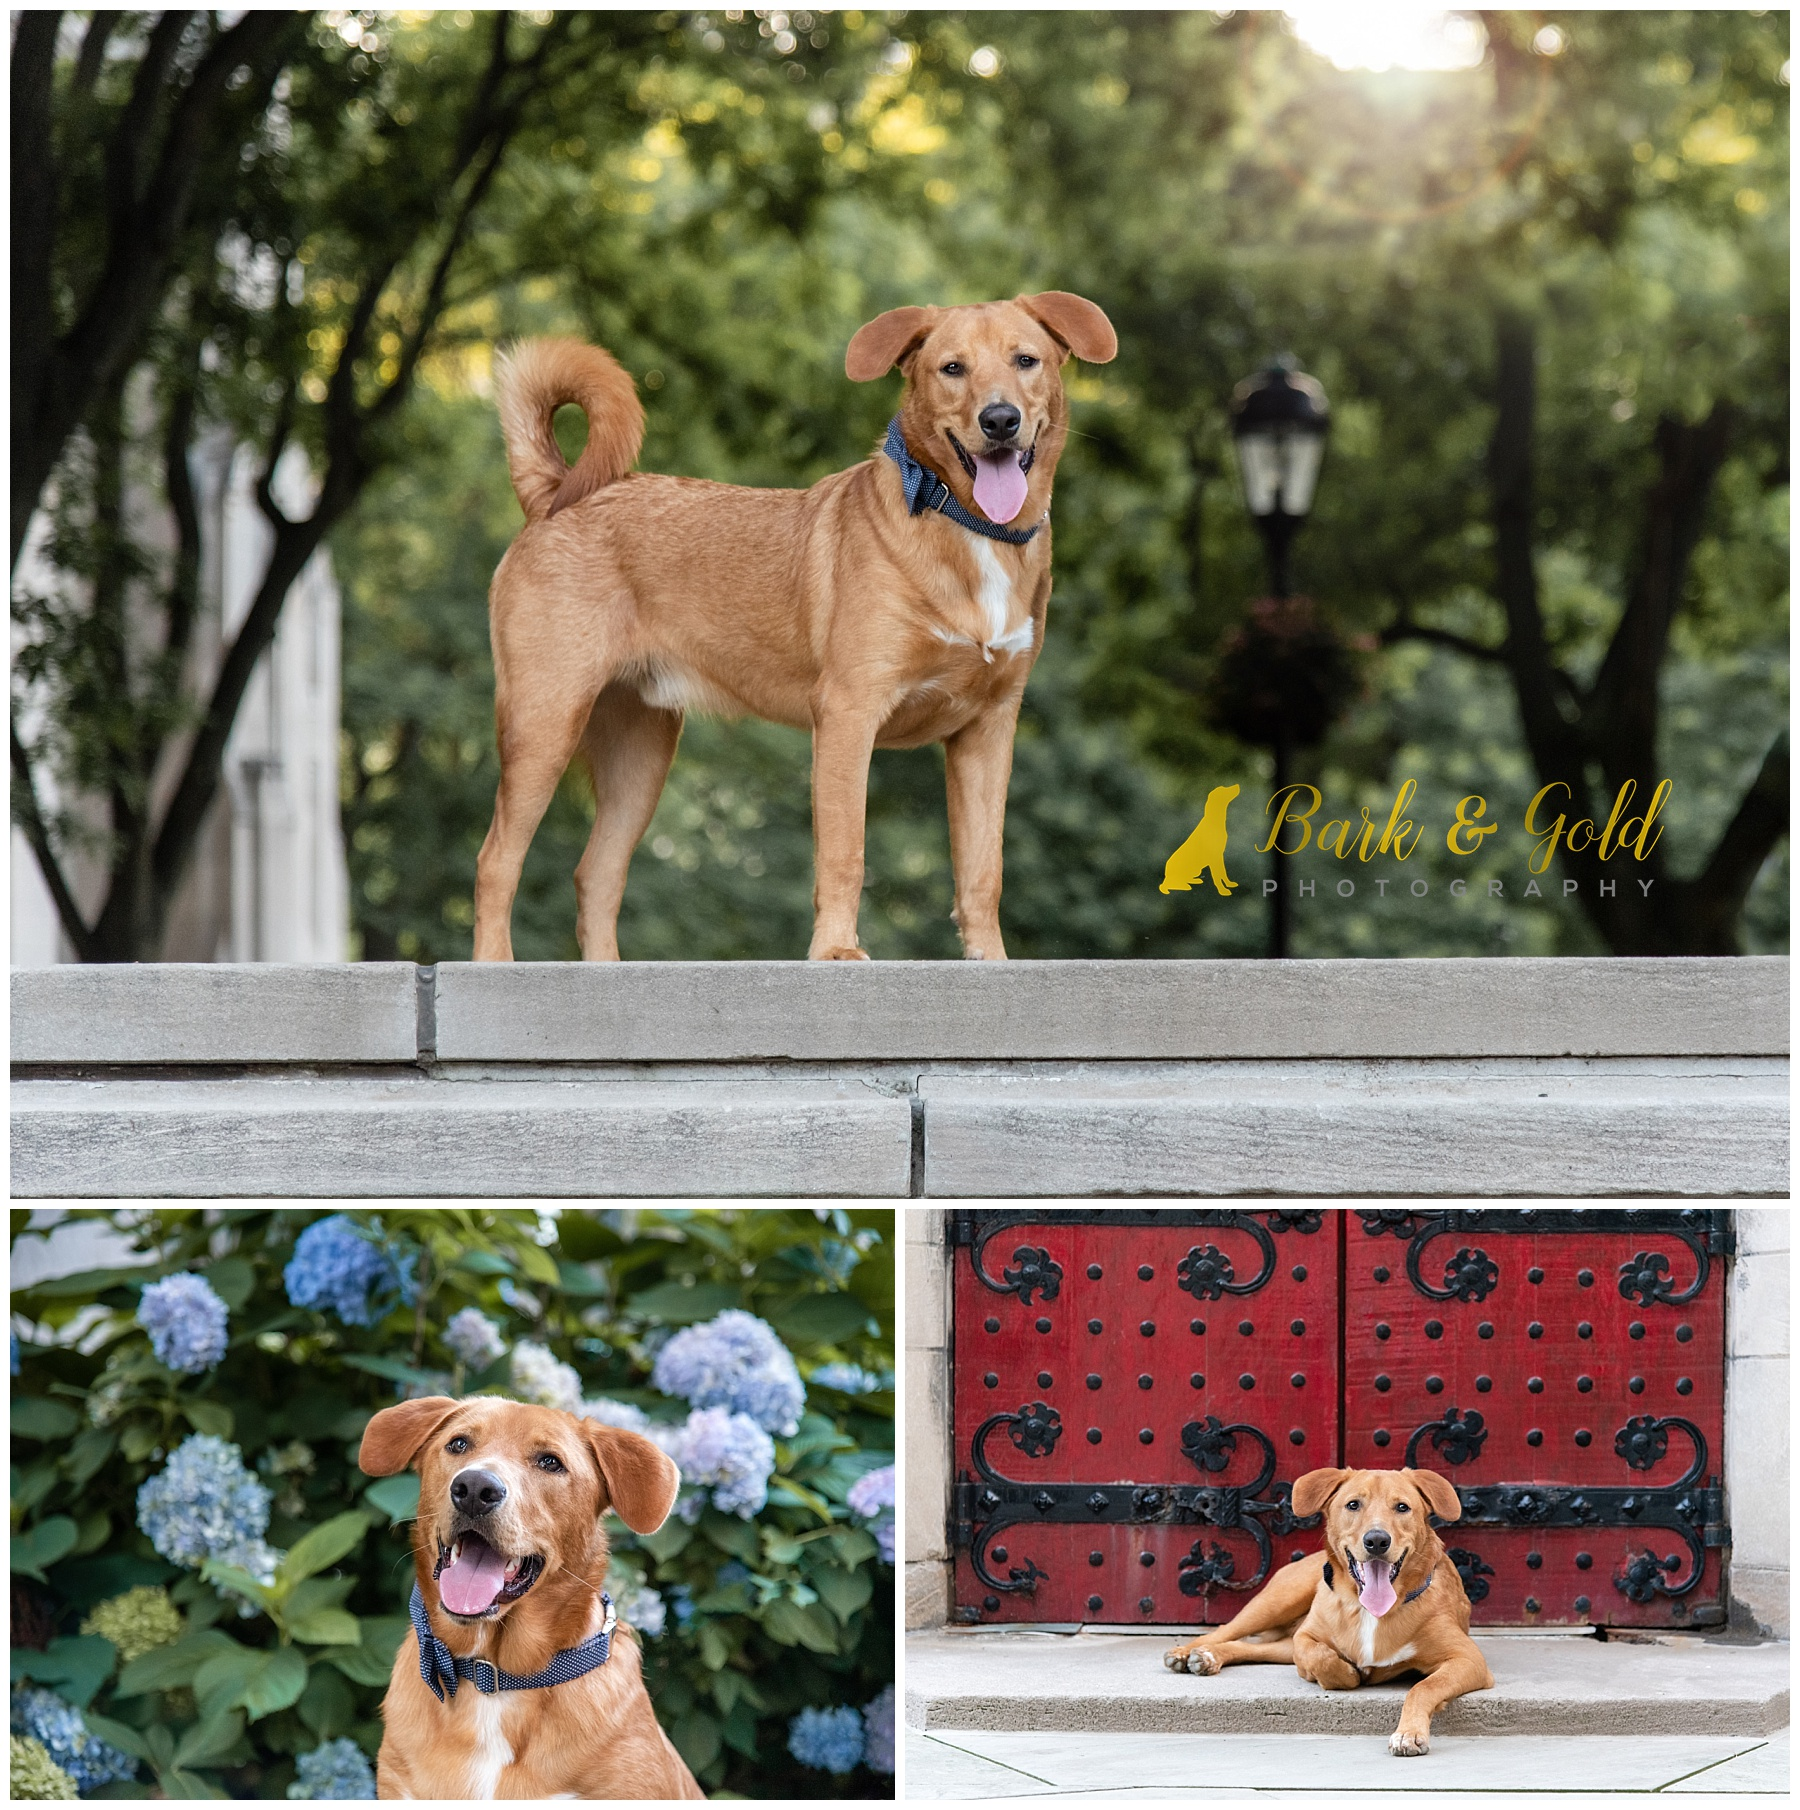 Brown mixed breed dog at Schenley Plaza by iconic red door